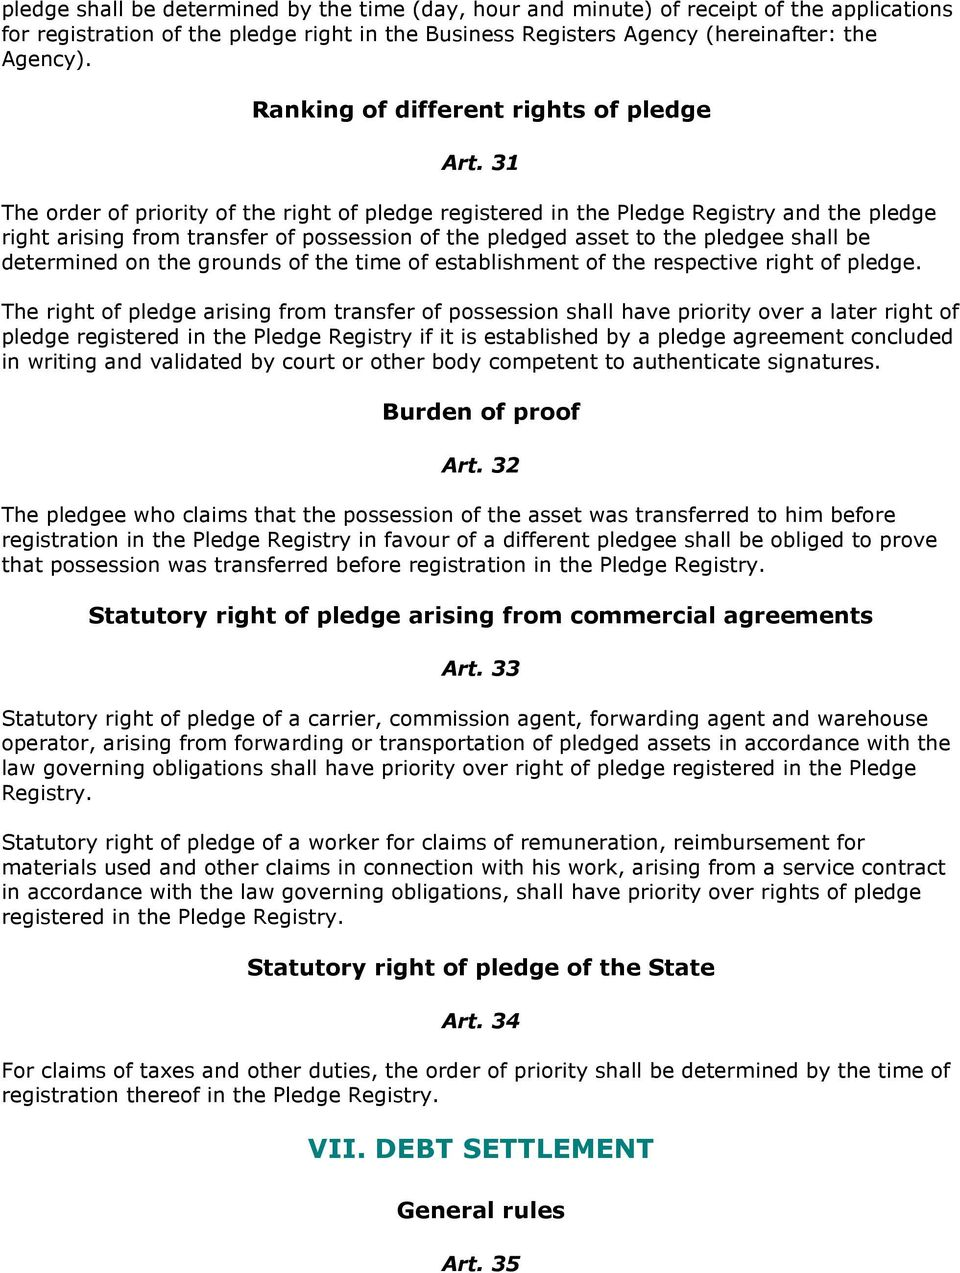 31 The order of priority of the right of pledge registered in the Pledge Registry and the pledge right arising from transfer of possession of the pledged asset to the pledgee shall be determined on